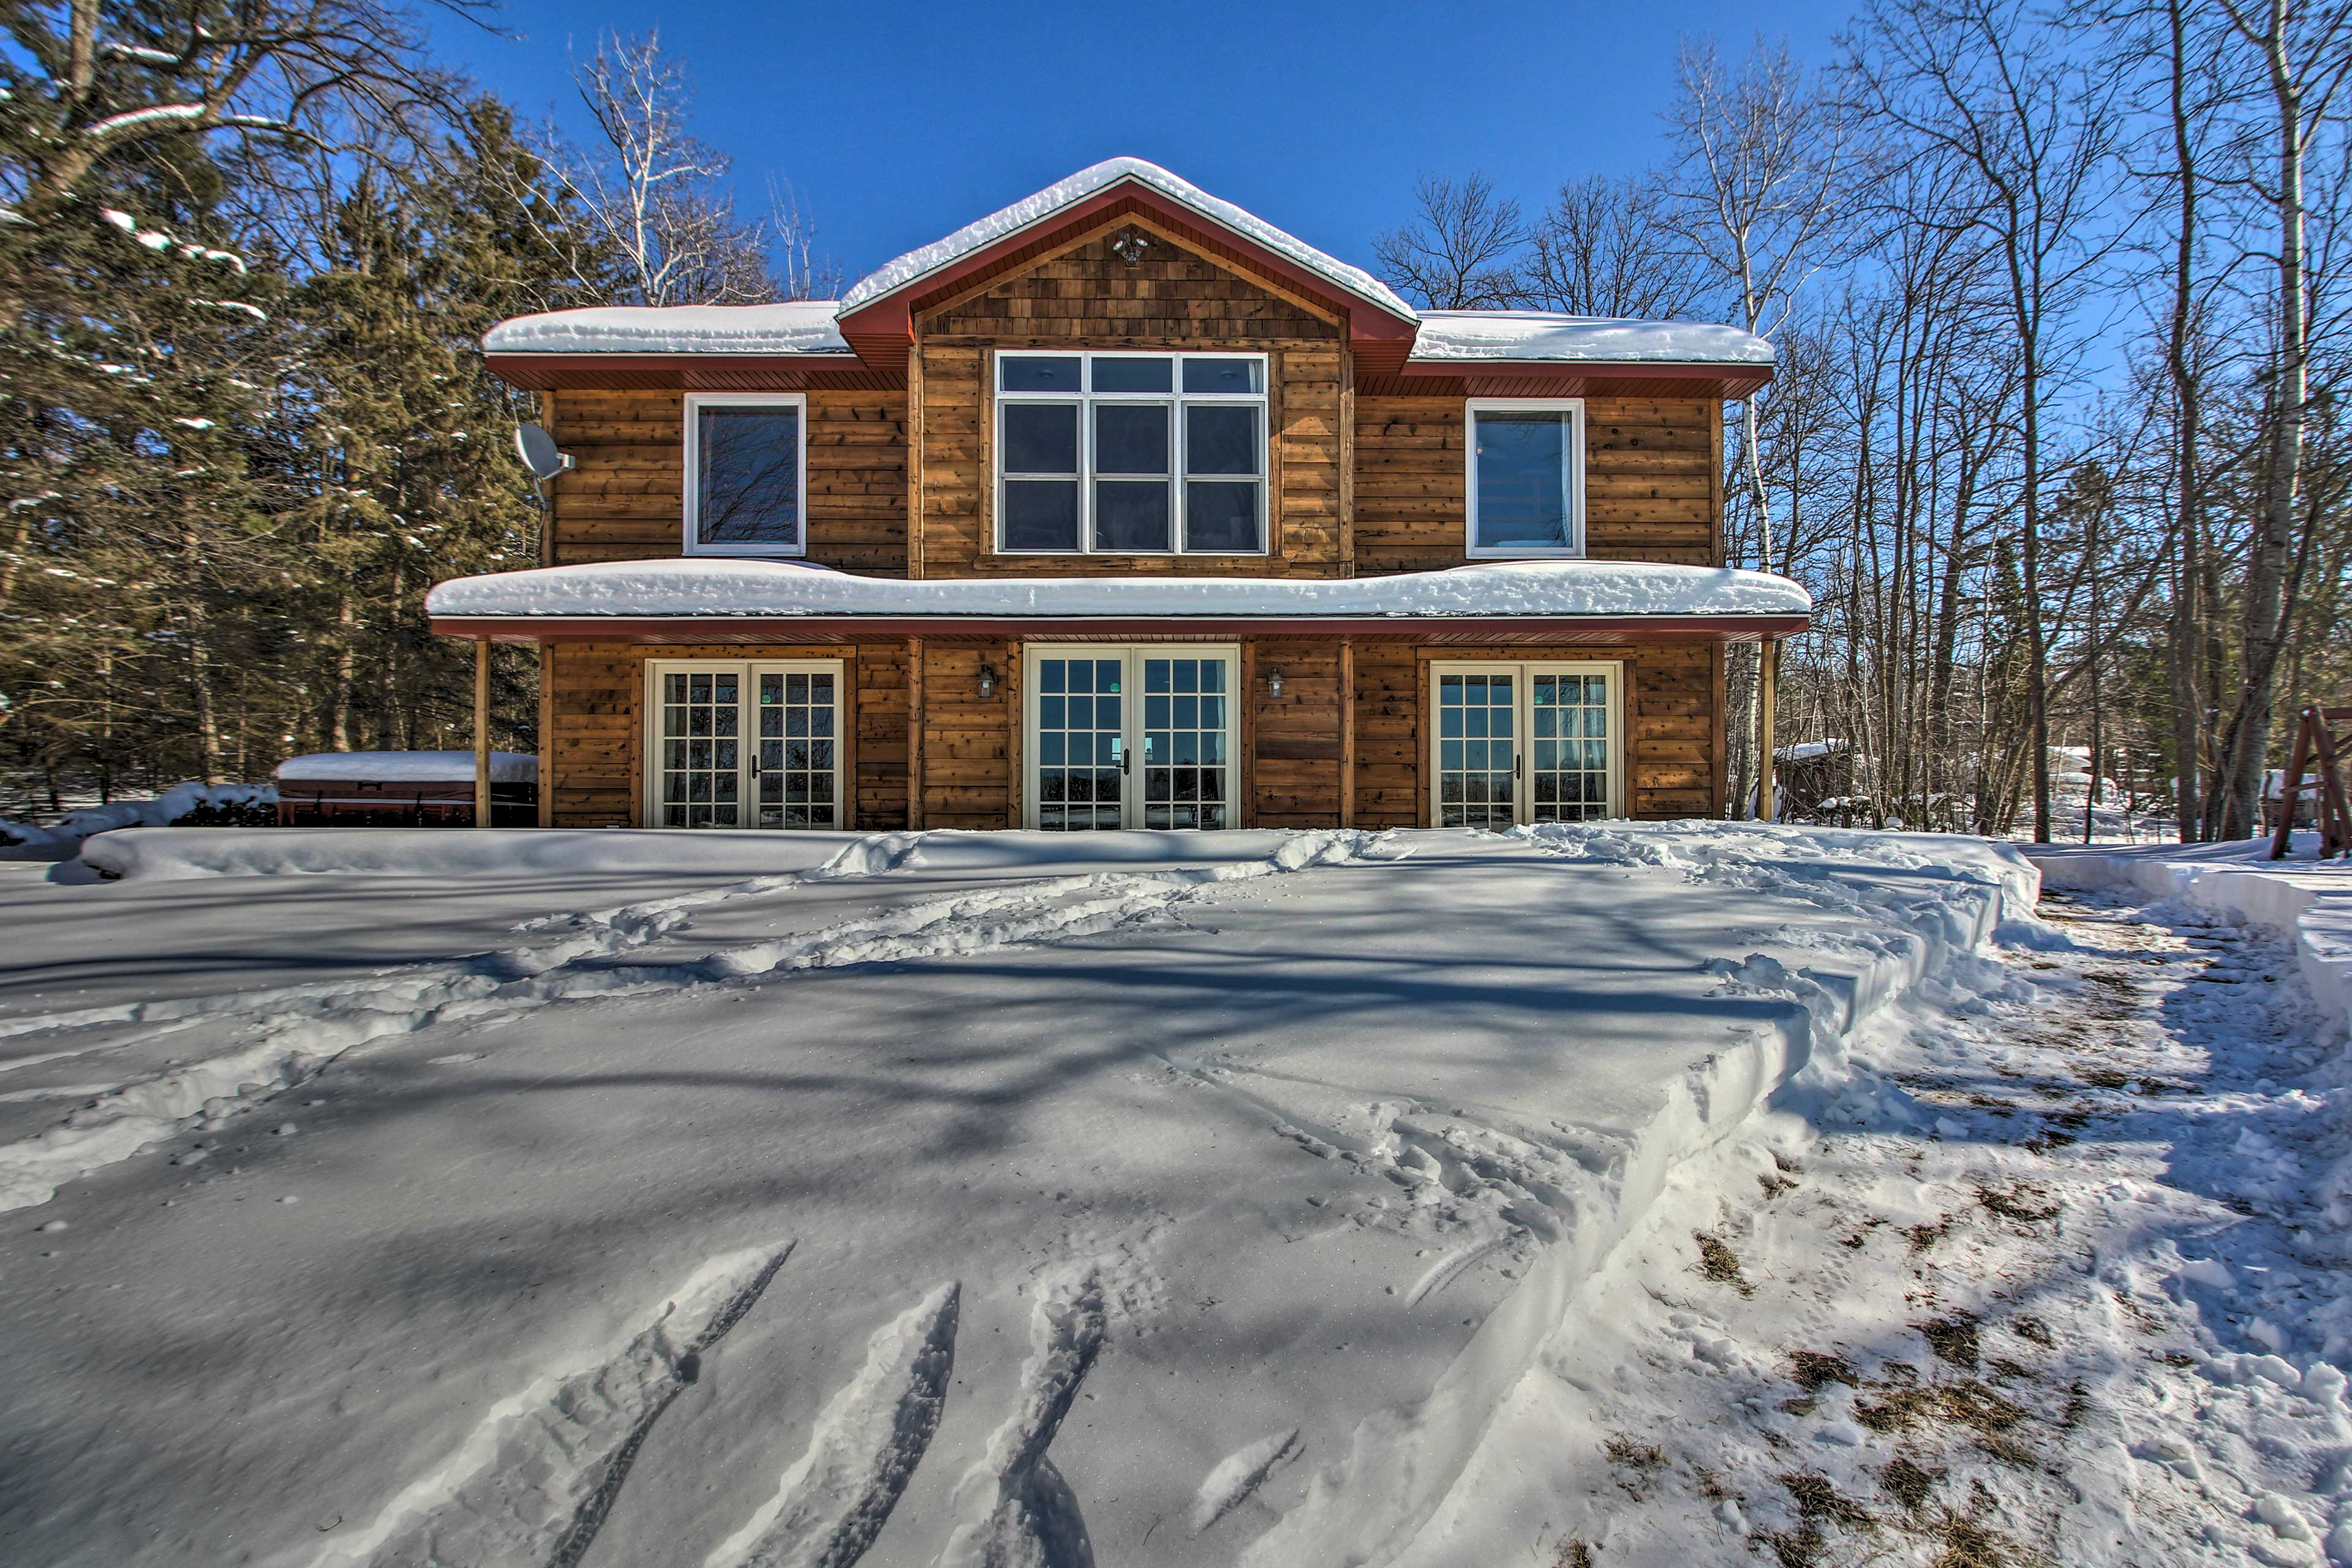 This home turns into a winter wonderland when the seasons change!